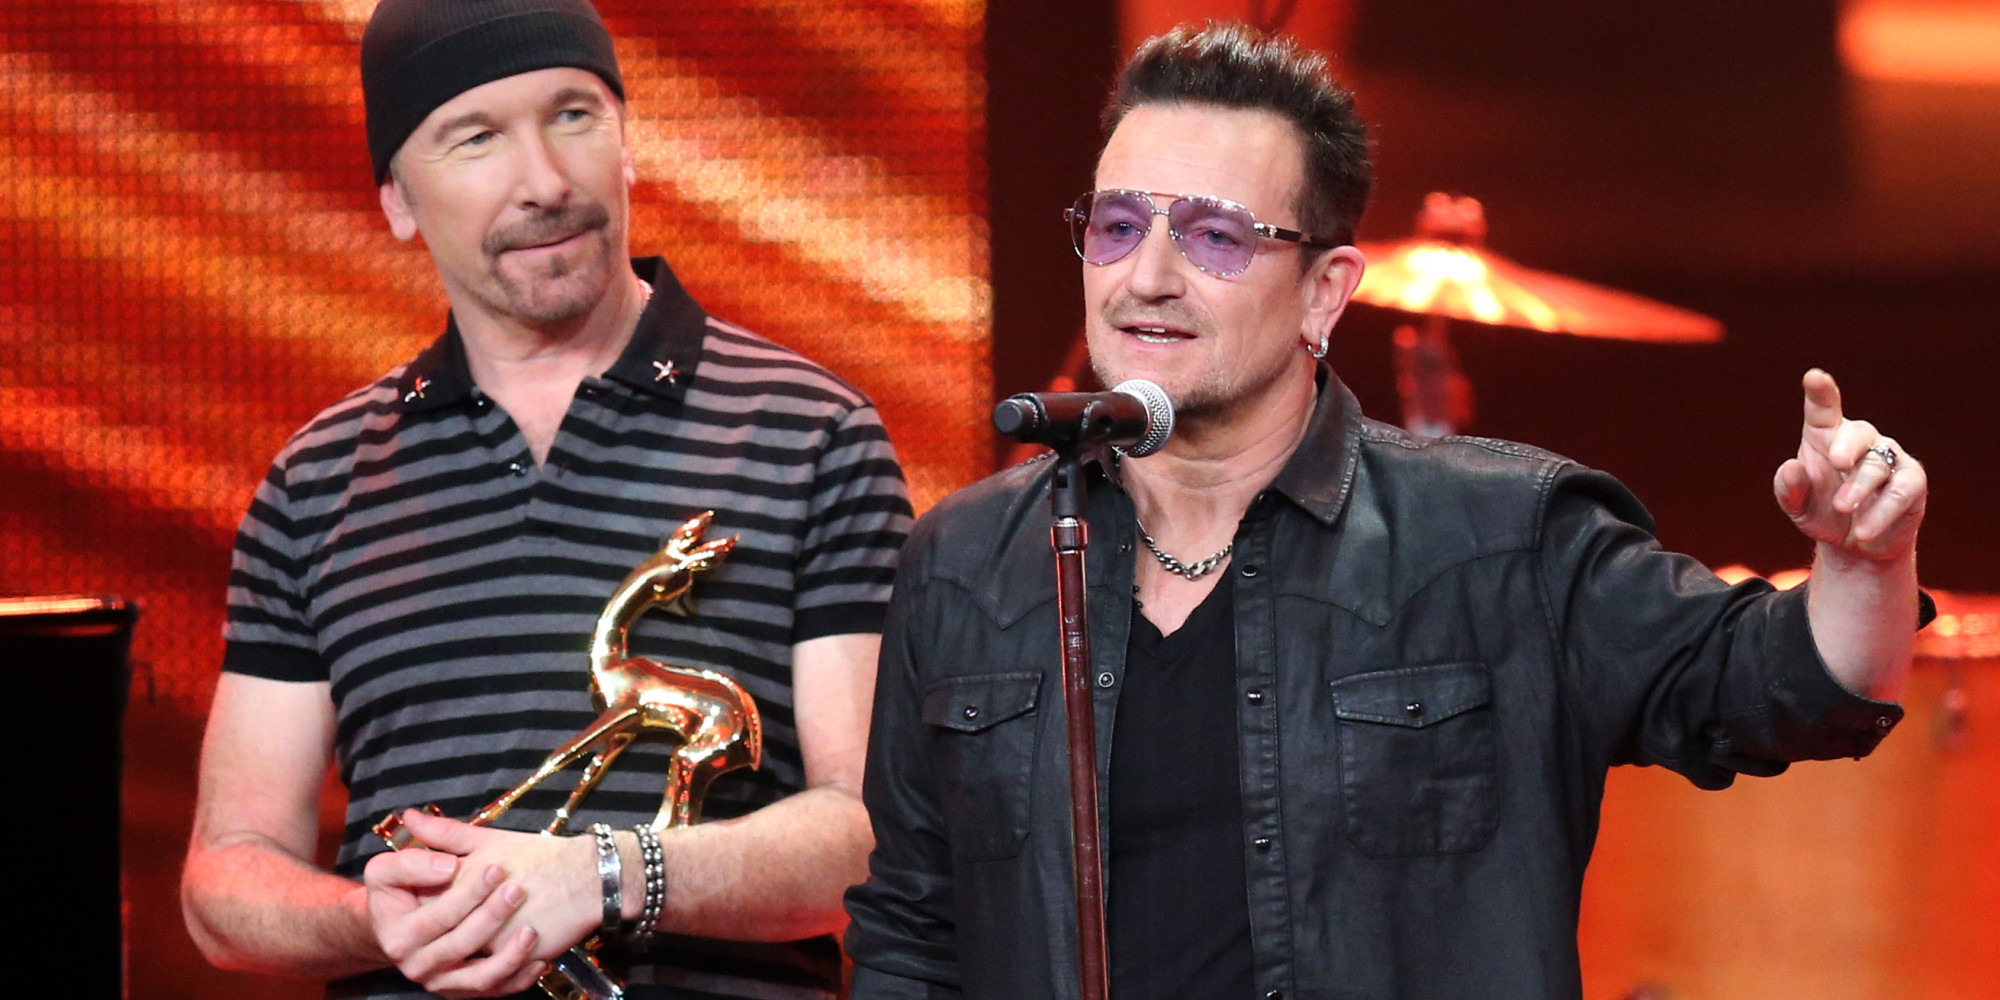 U2 supporting gay marriage